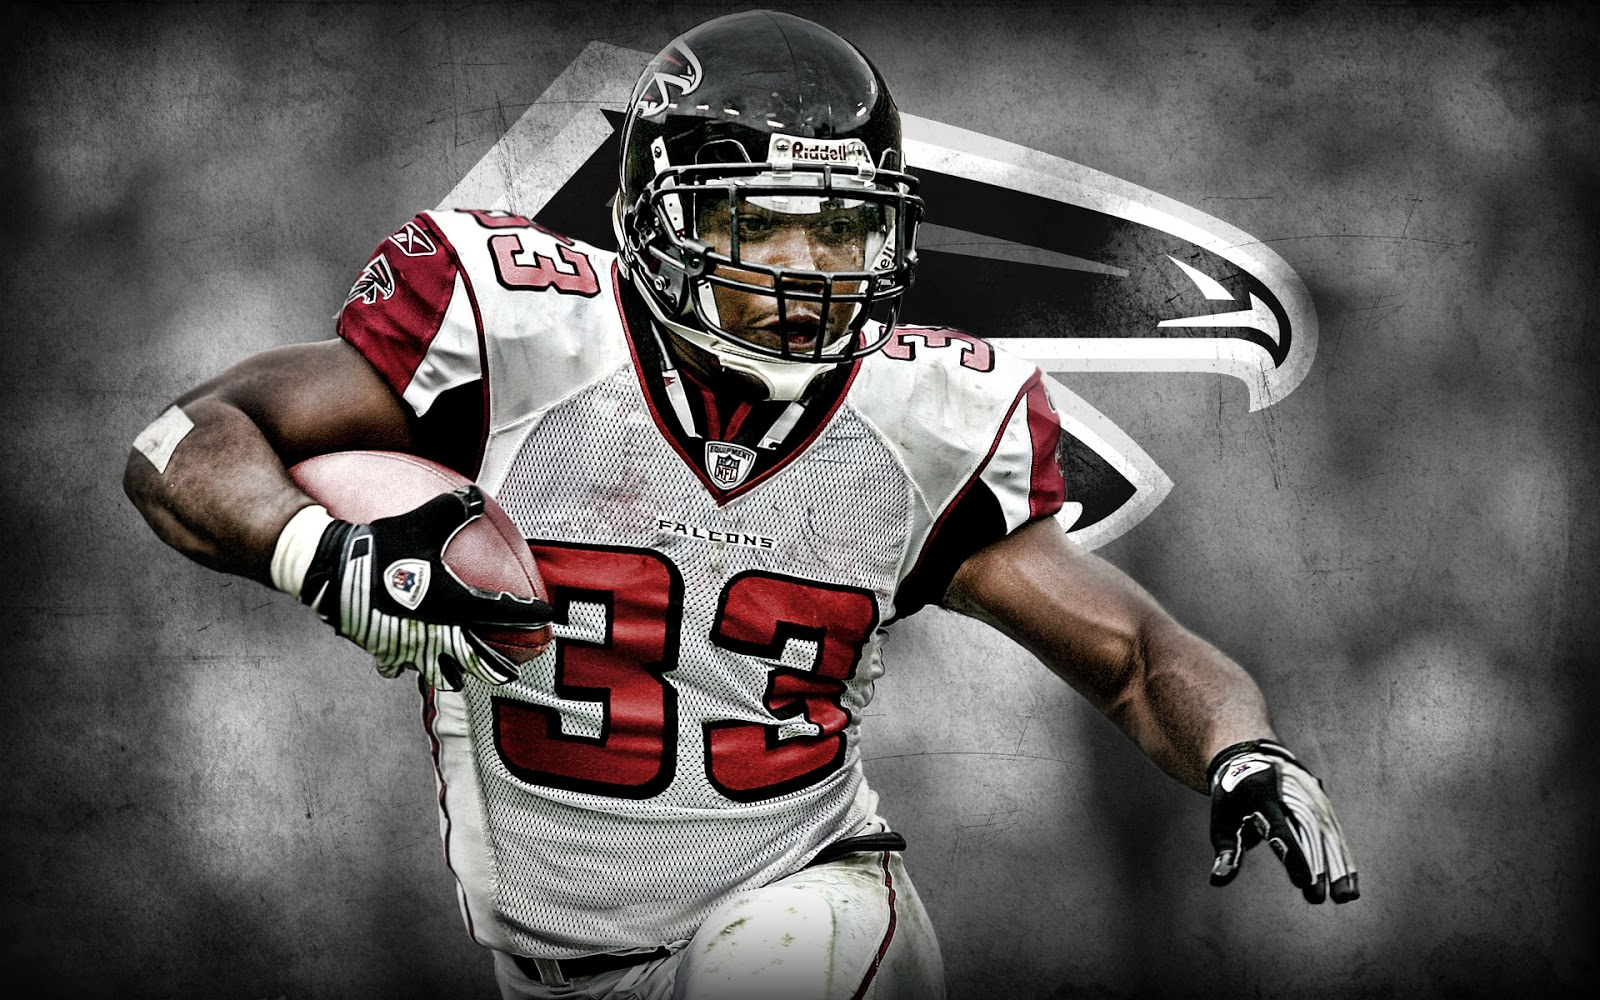 Falcons Iphone Wallpaper: Falcons Wallpapers